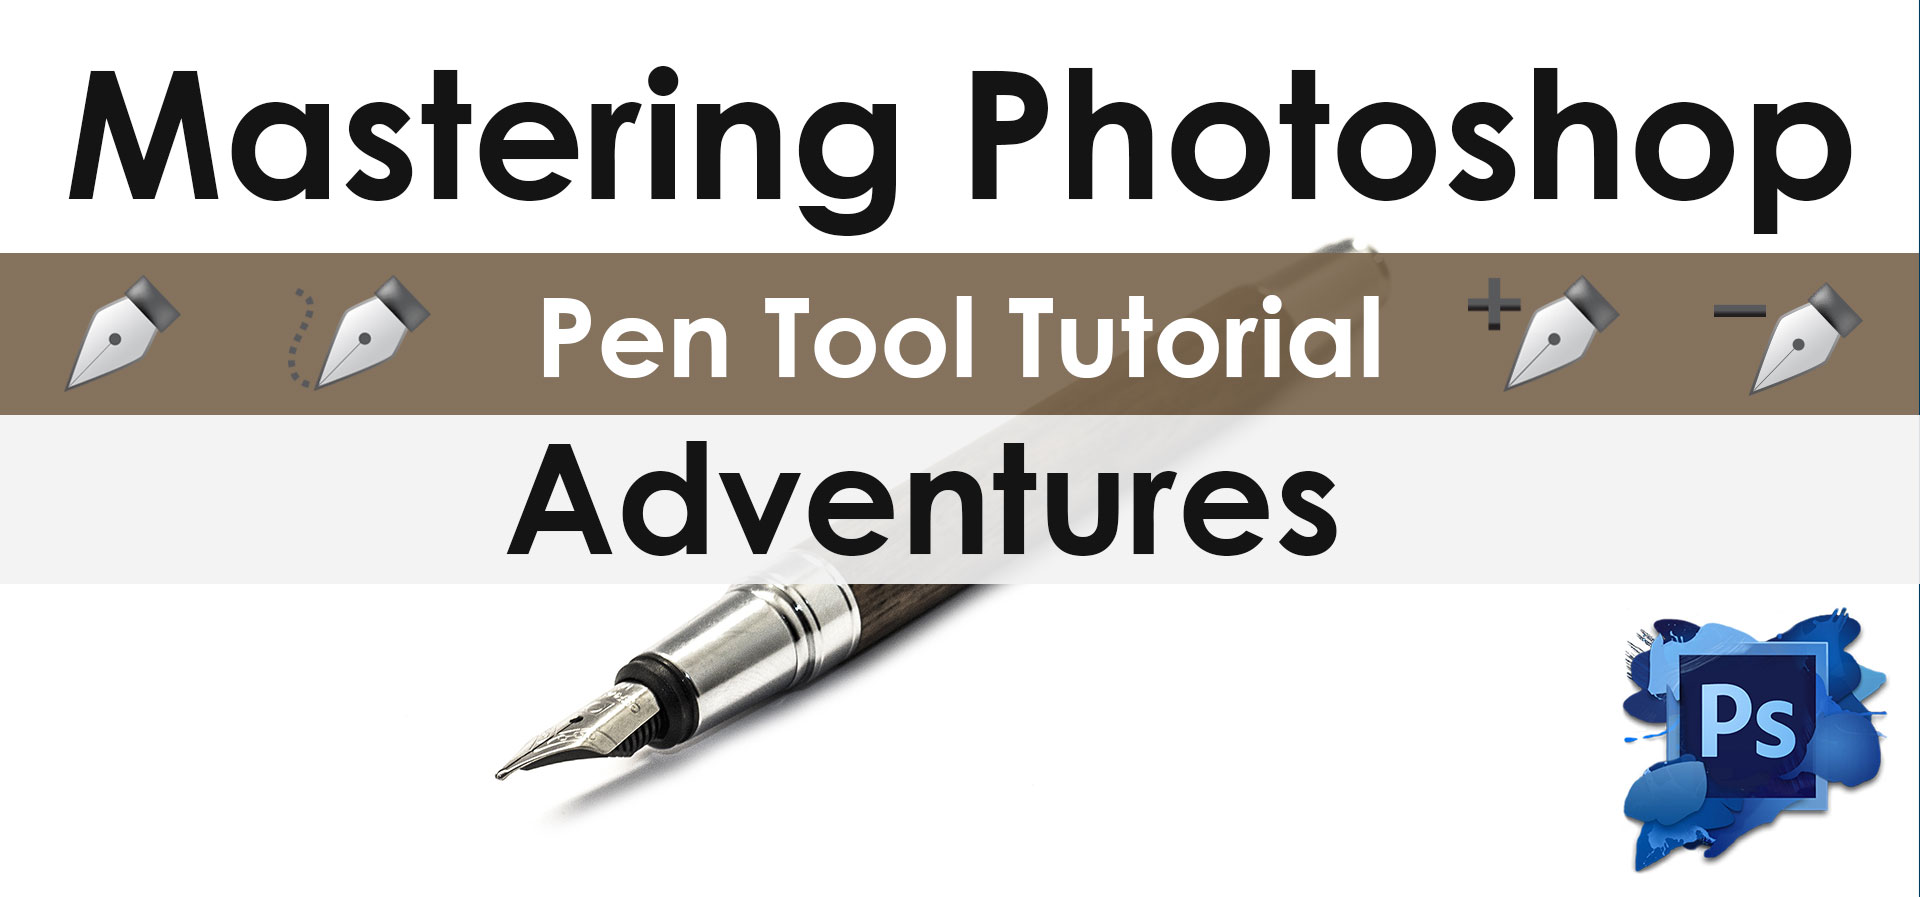 Mastering-Photoshop-Pen-Tool-Tutorial-Adventures